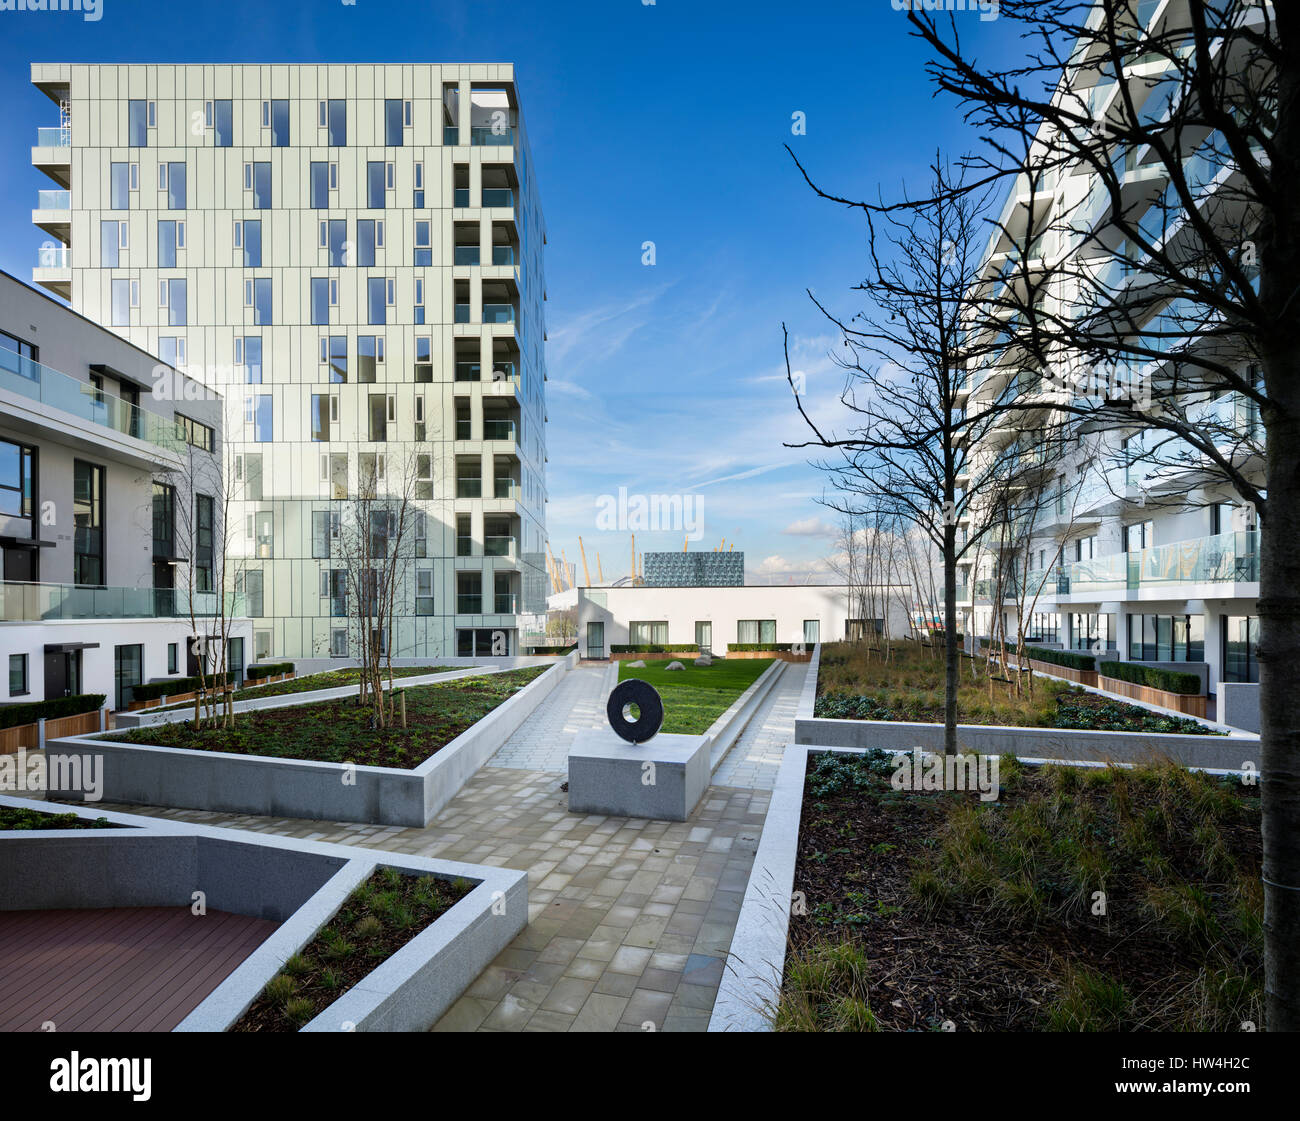 Exterior view of a building of the Greenwich Peninsular development and regeneration program, London, UK. Stock Photo